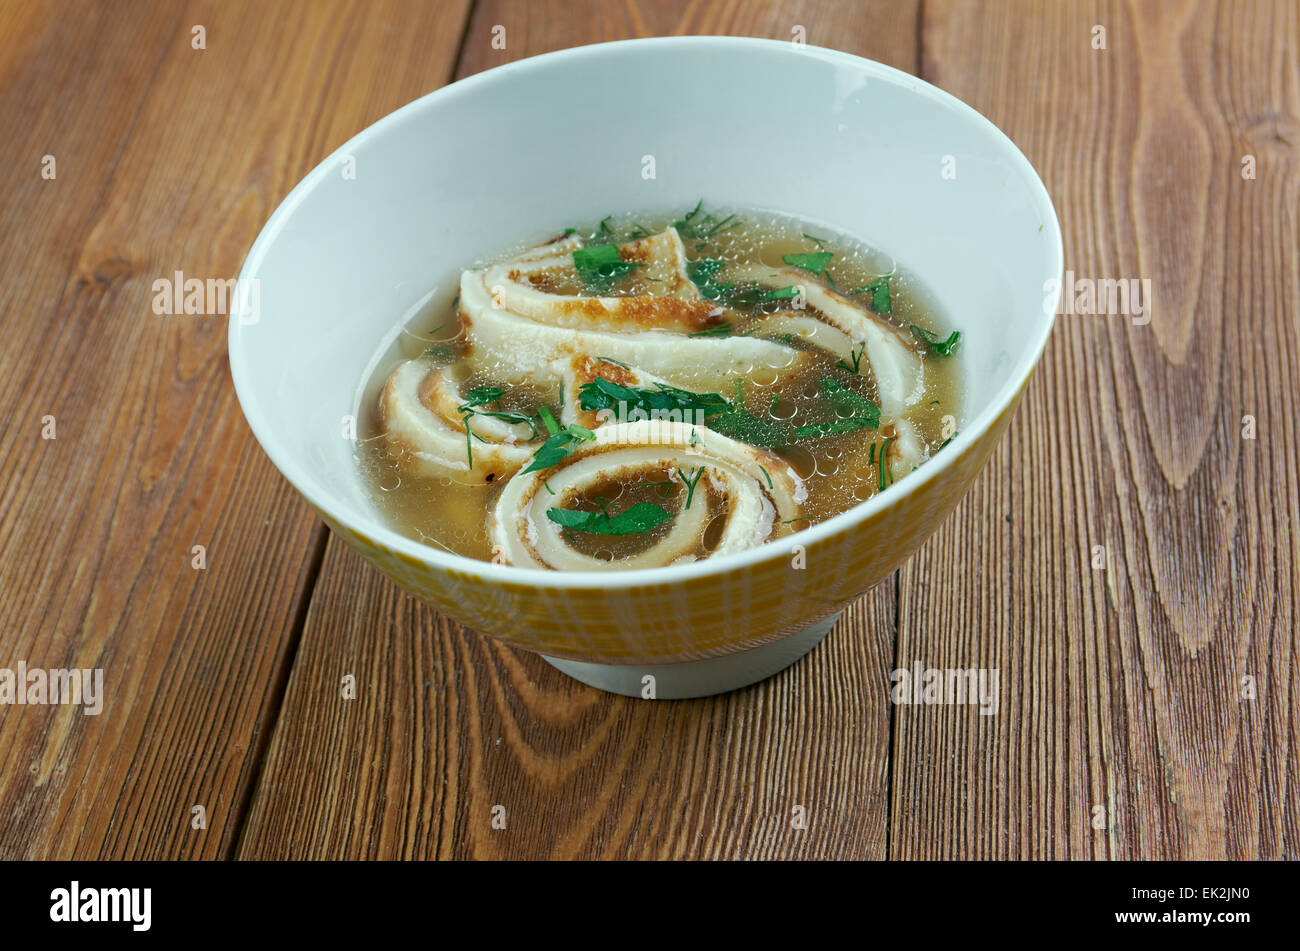 Pfannkuchensuppe - southern German dish from the region of Schwaben, made from savoury pancakes. - Stock Image